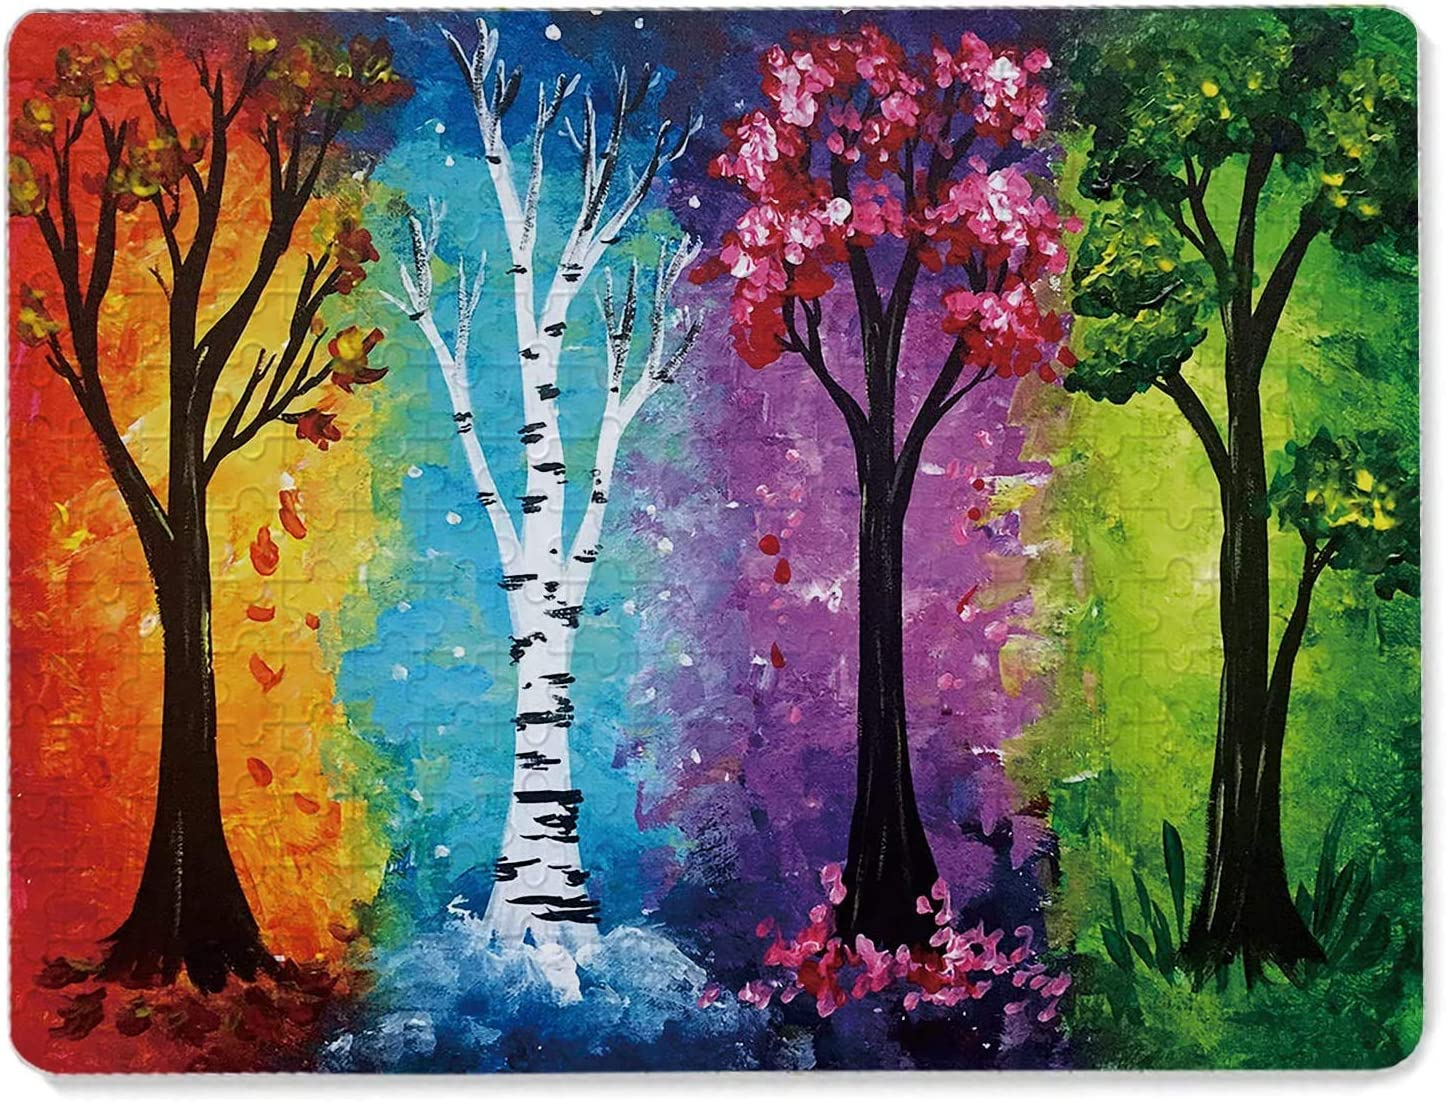 Jigsaw Puzzle 1000 Pieces,Four Season Tree Puzzles for Adults Kids Wood Jigsaw Puzzles,Wall Decor